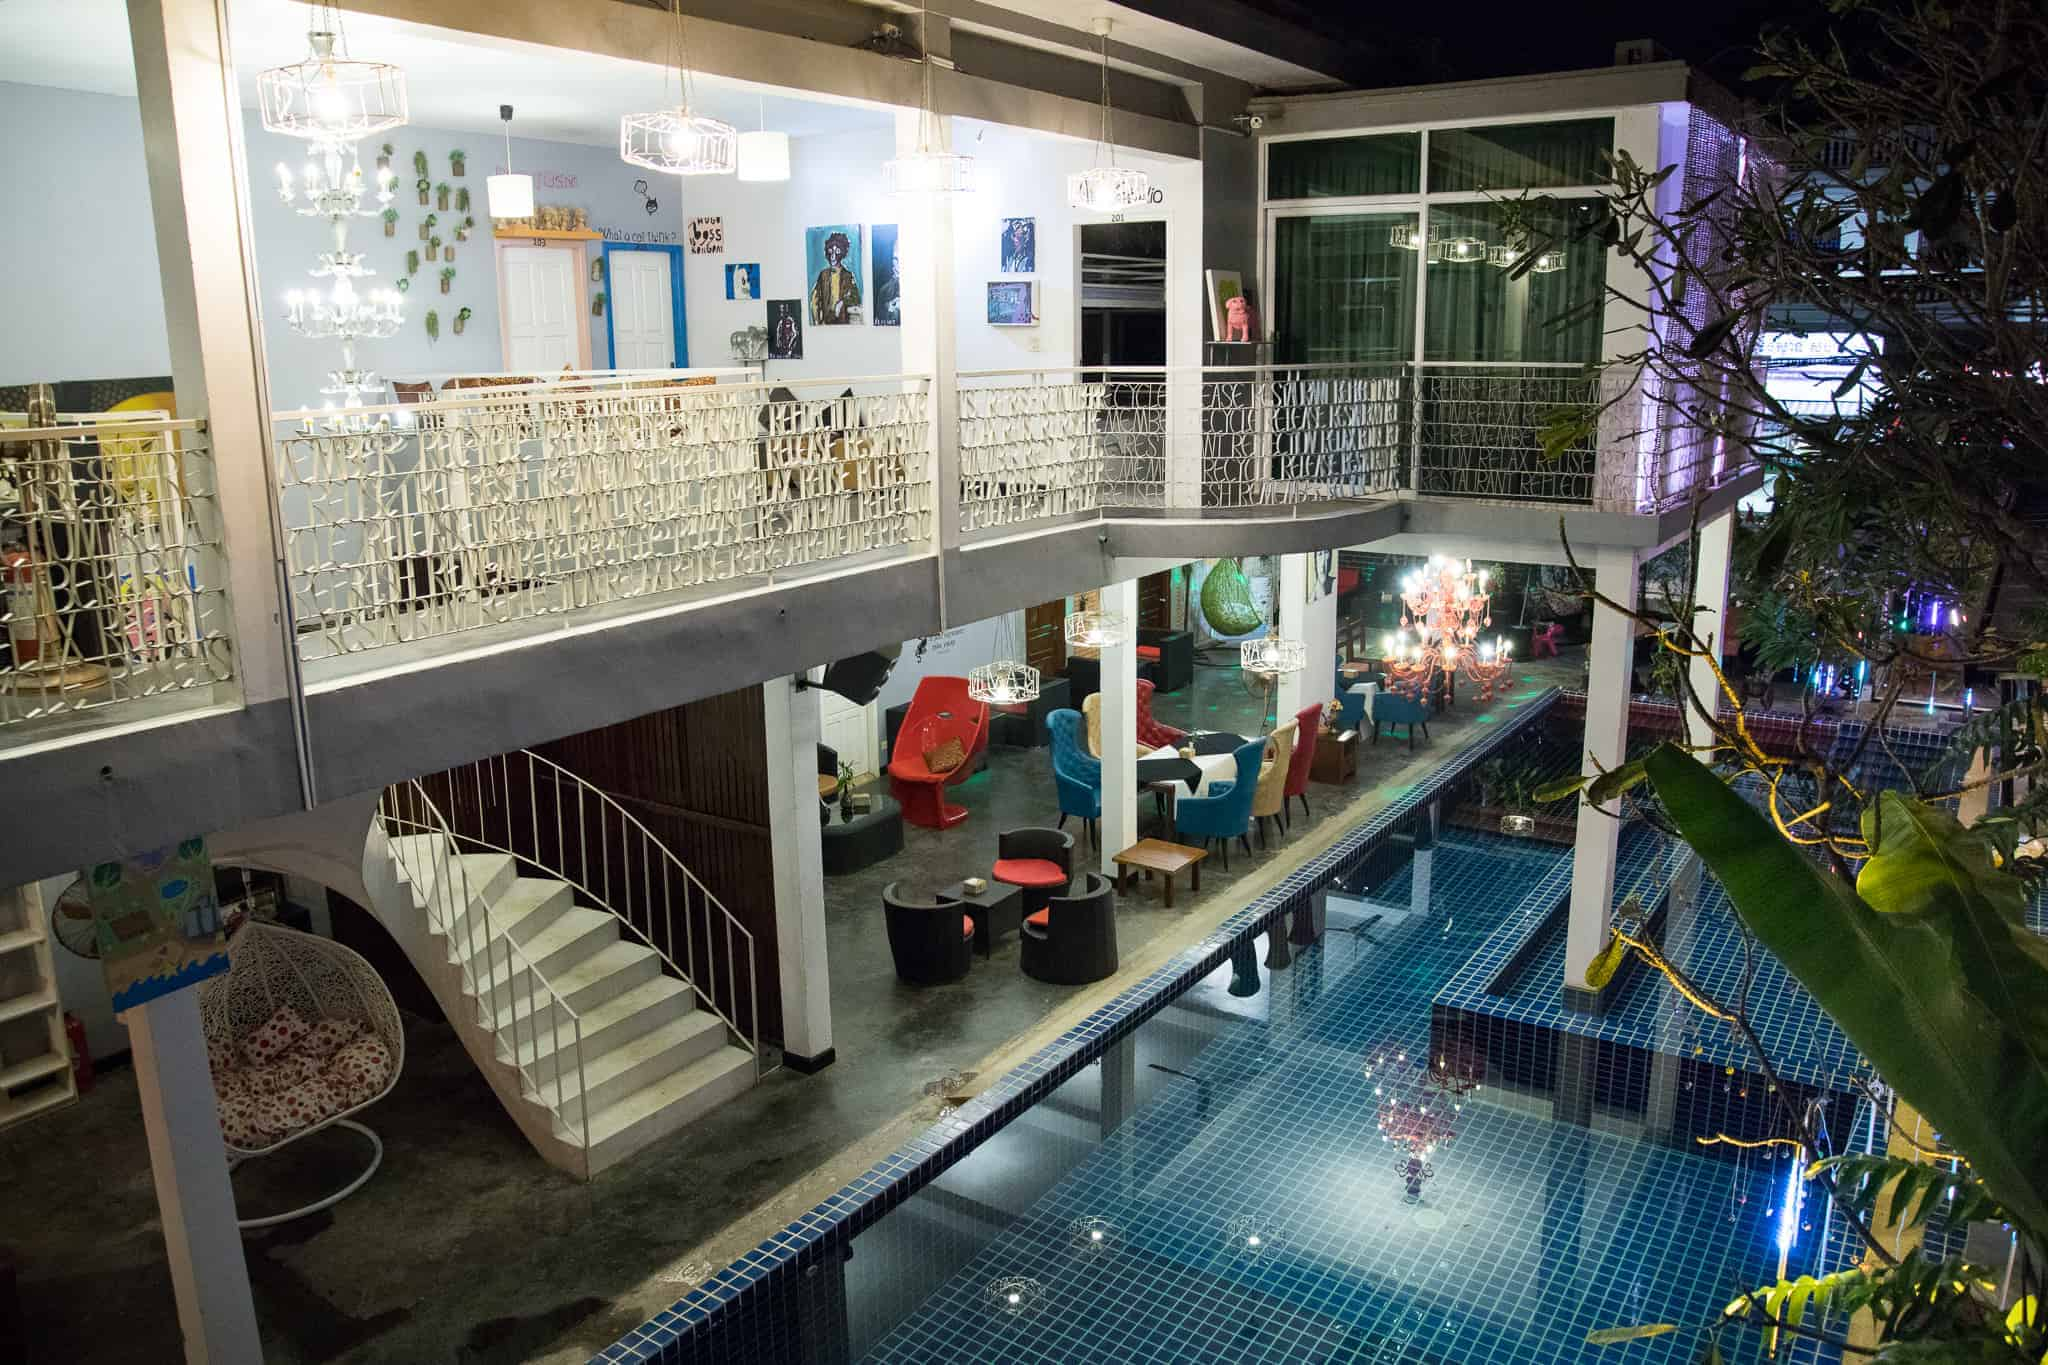 Stretching to 21 meters long, the outdoor pool in White Rabbit Hostel is one of the longest in Siem Reap, Cambodia